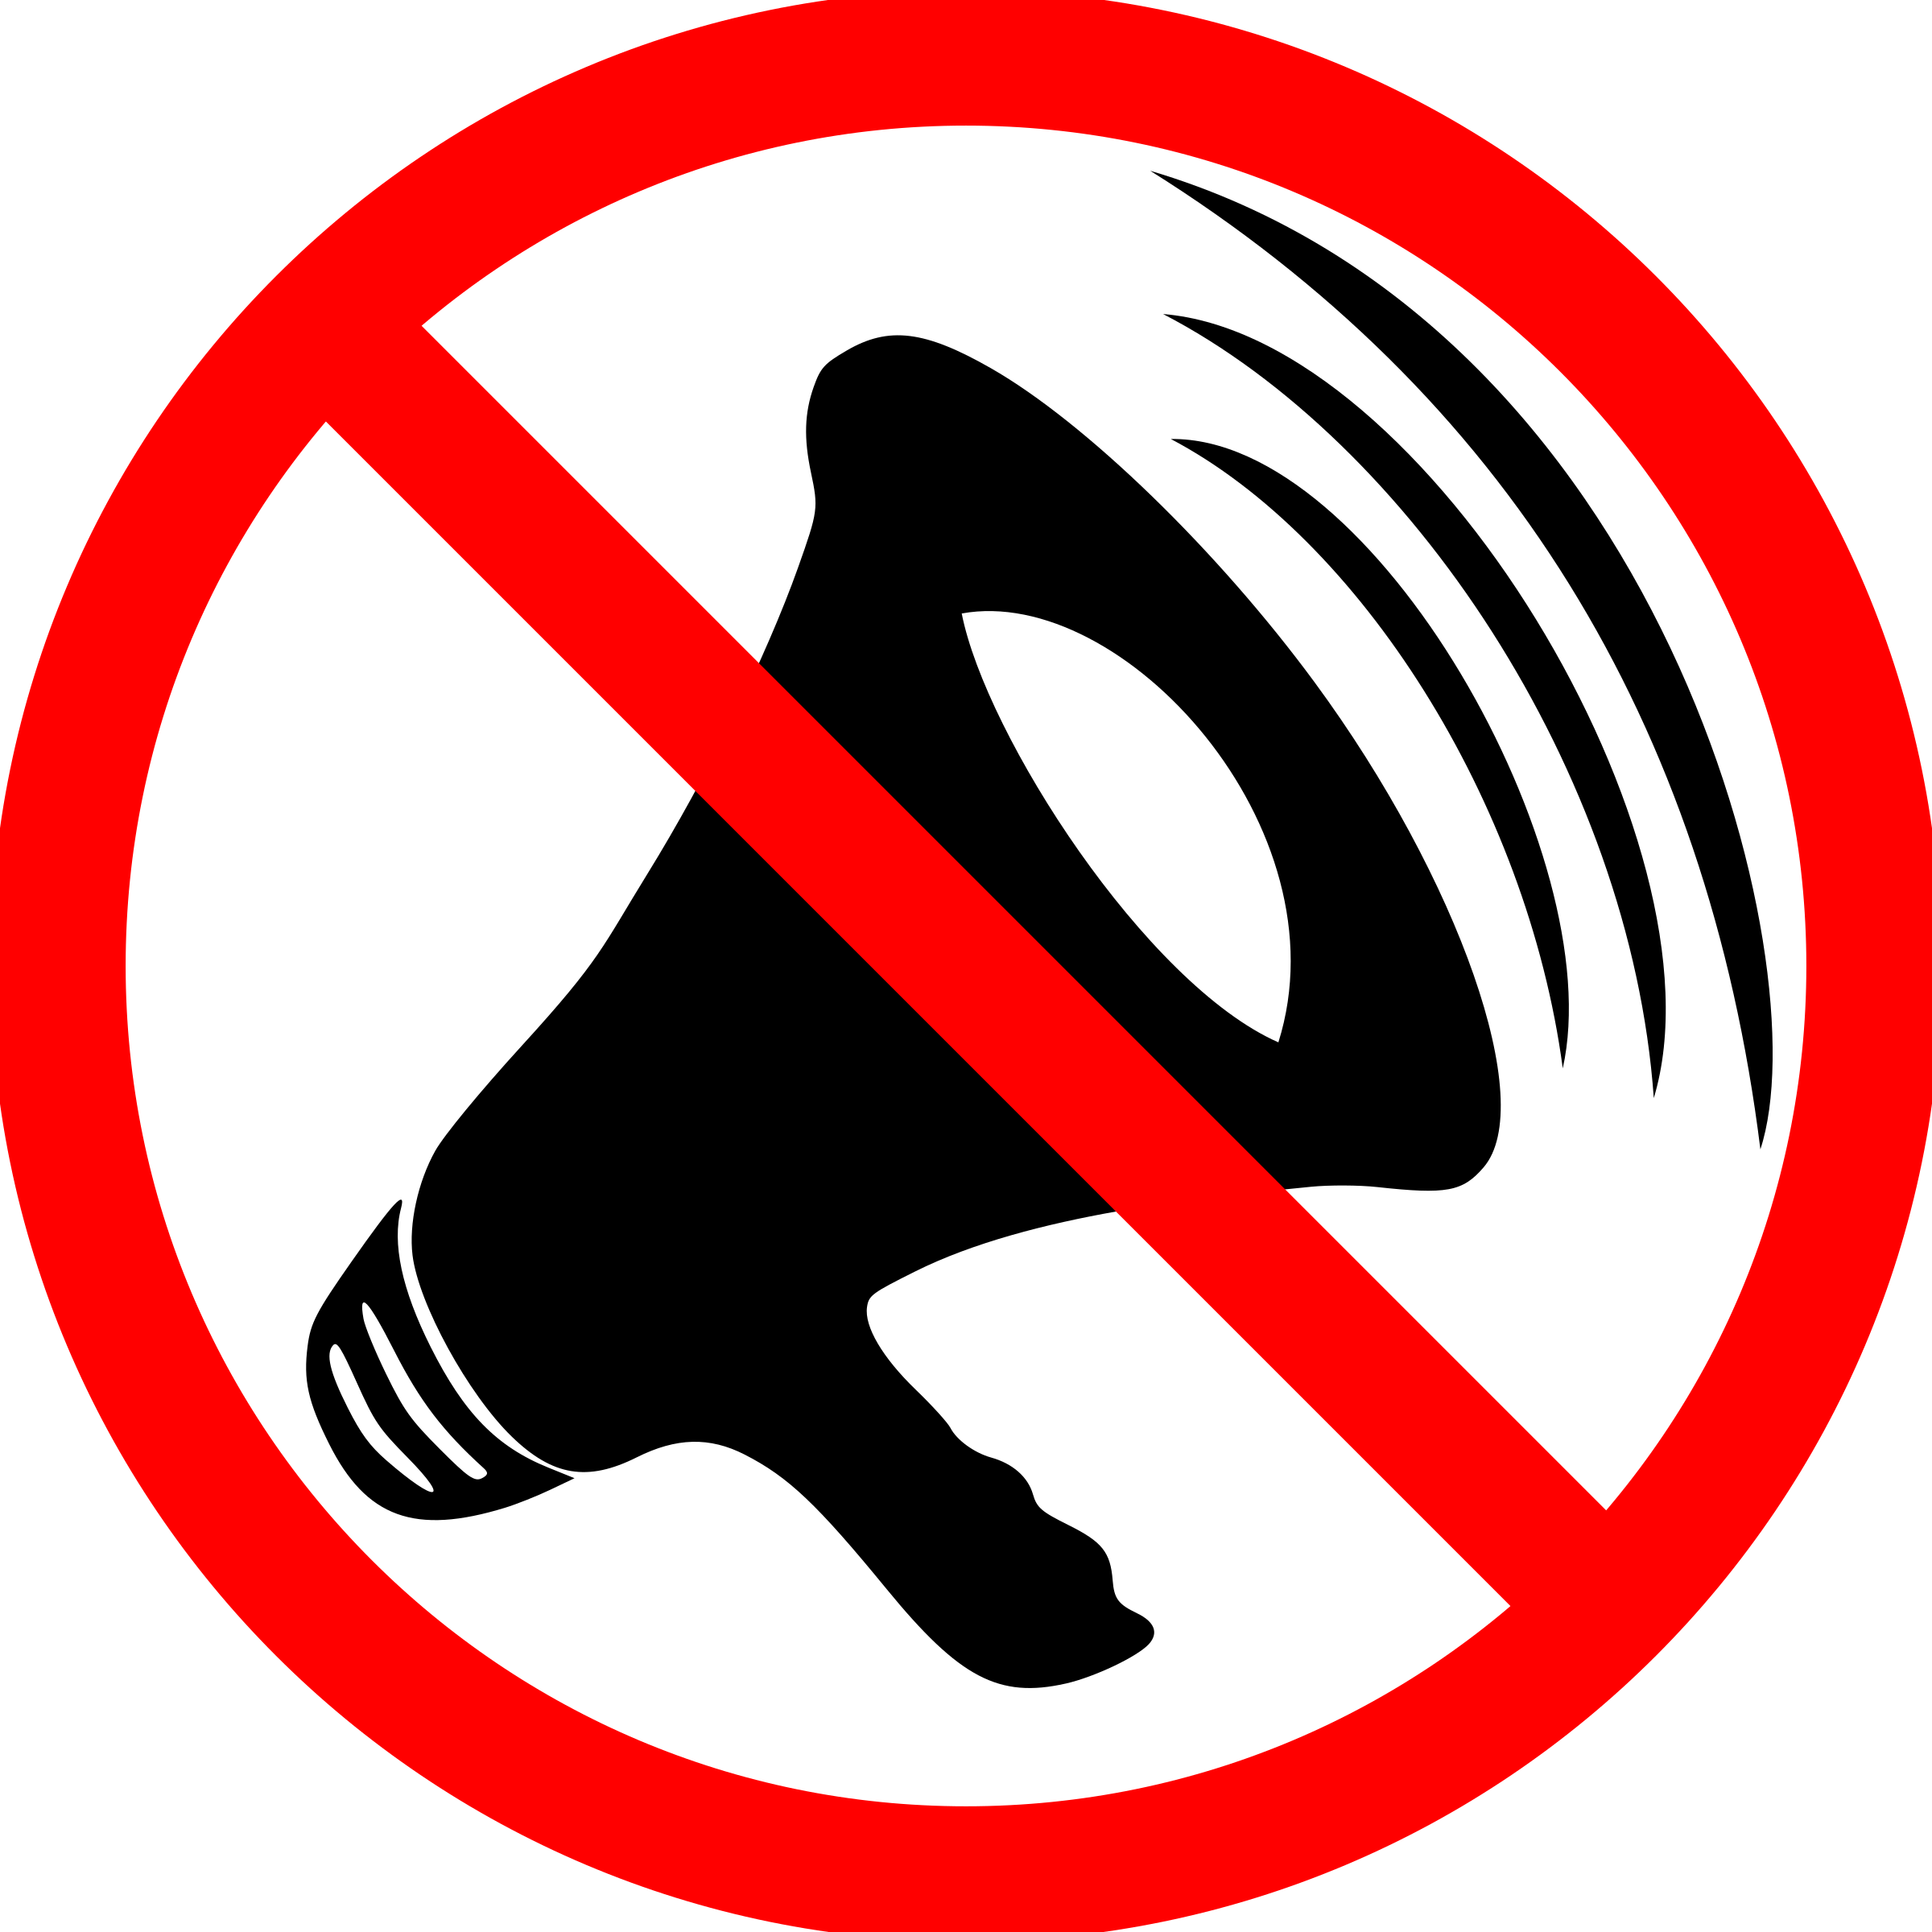 Download PNG image - Silence Png Picture - No Noise PNG